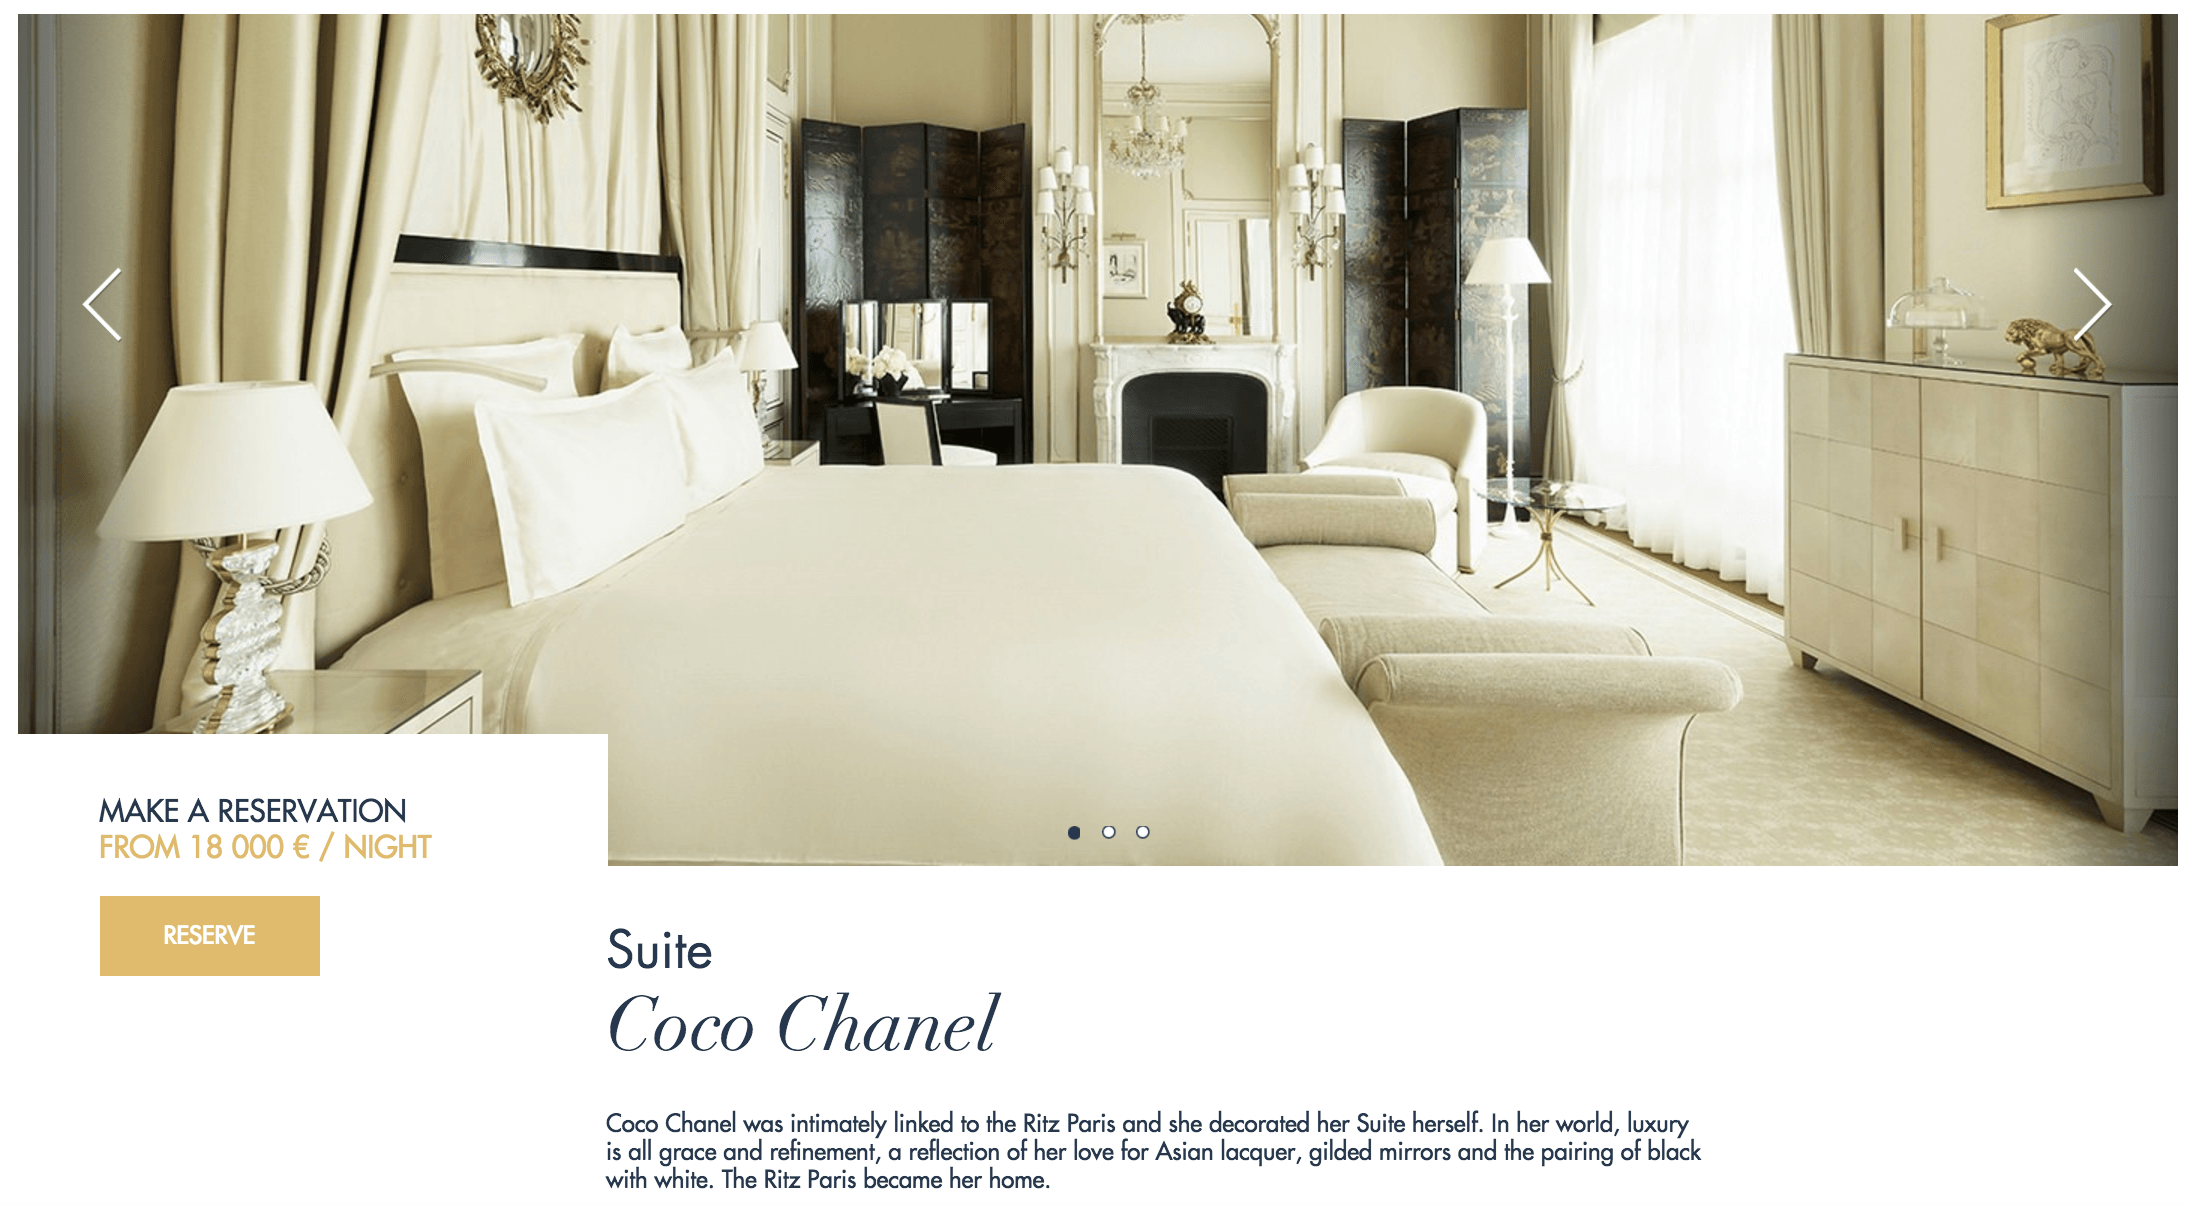 http://www.ritzparis.com/en-GB/luxury-hotel-paris/prestige-suites/coco-chanel-suite